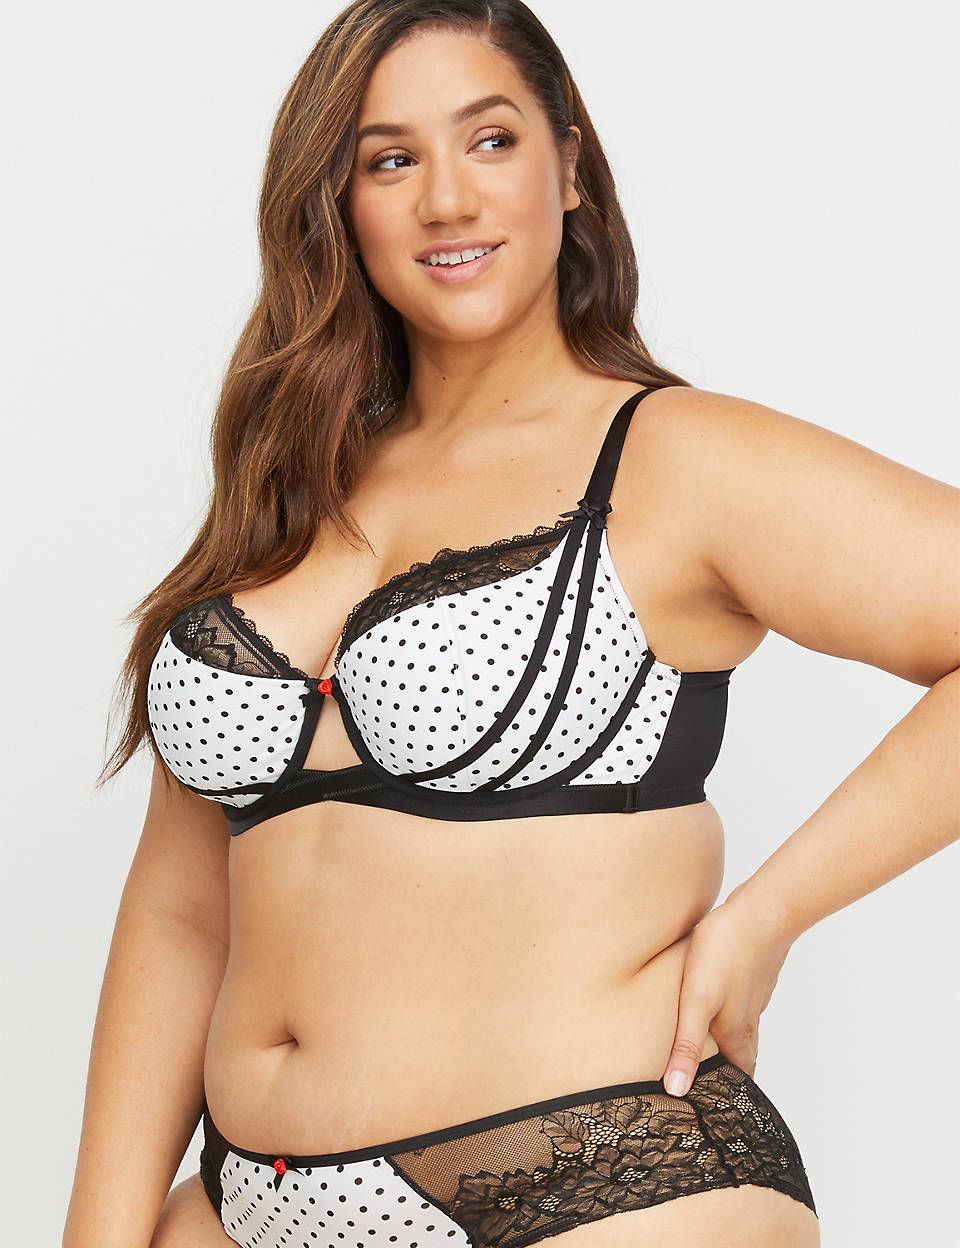 8bf9d9ec6 Polka Dot   Lace Lightly Lined French Balconette Bra.  48.95- 58.95. BUY 1  GET 1 75% OFF WITH CODE B1G175. 1